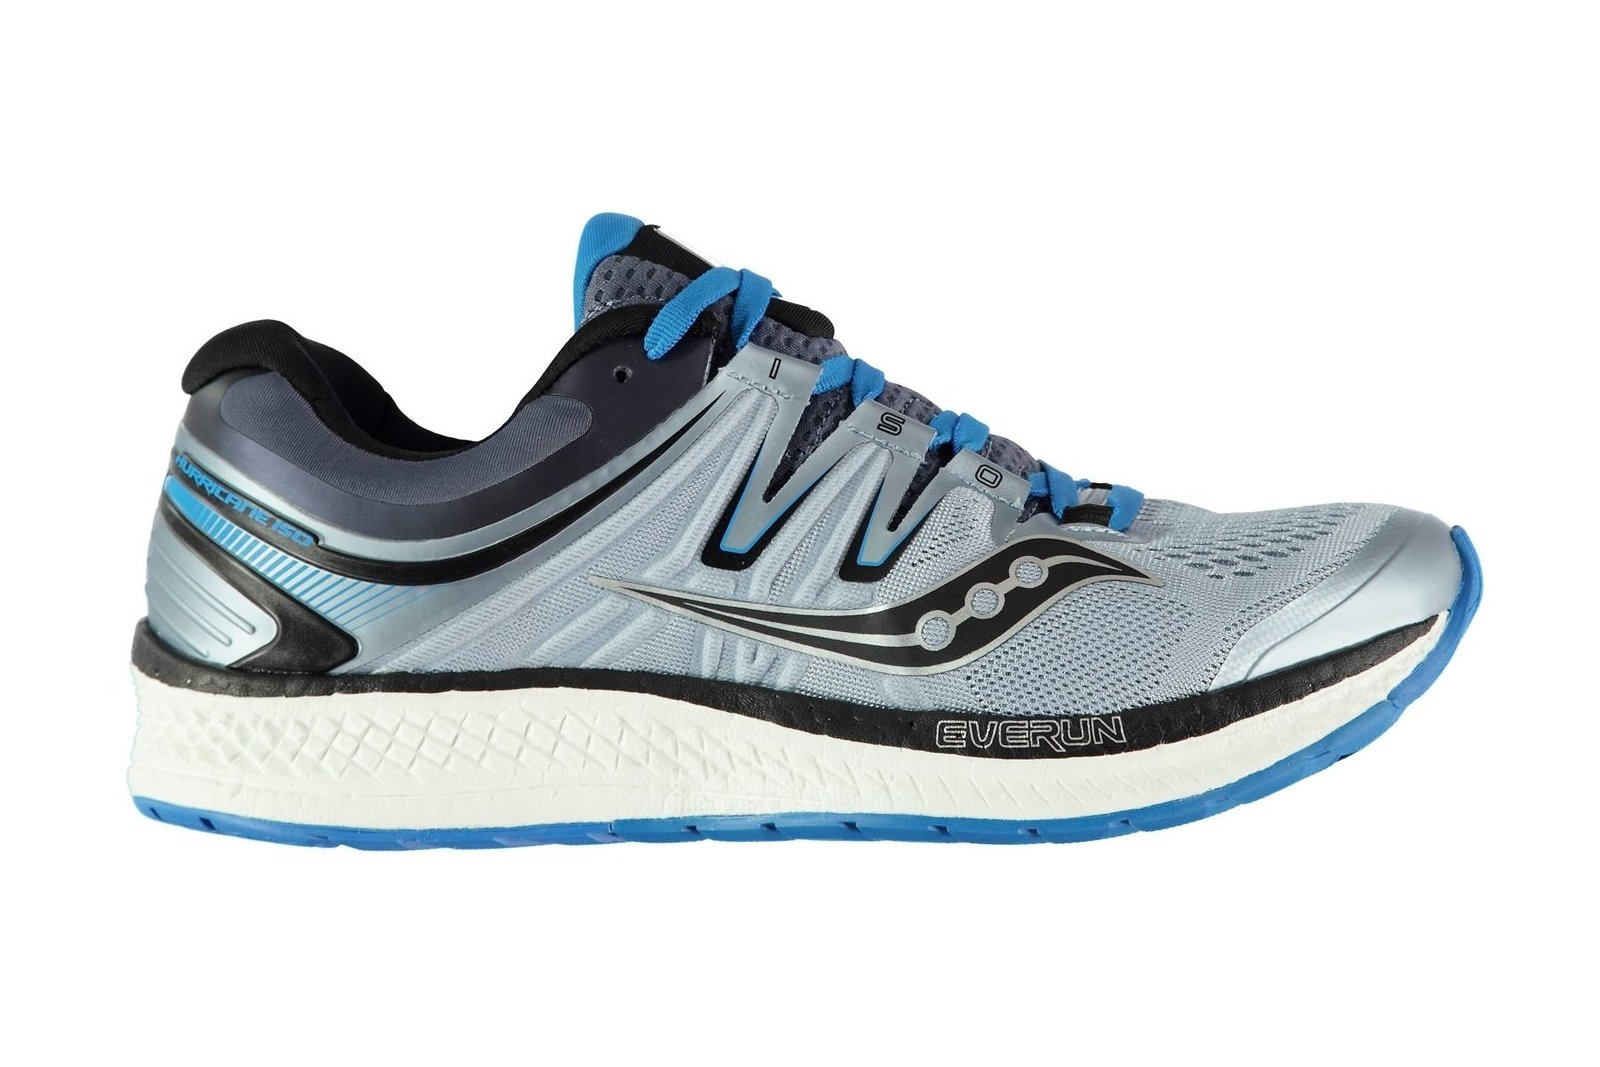 Details about Saucony Mens Hurricane ISO 4 Running Shoes Trainers Sports